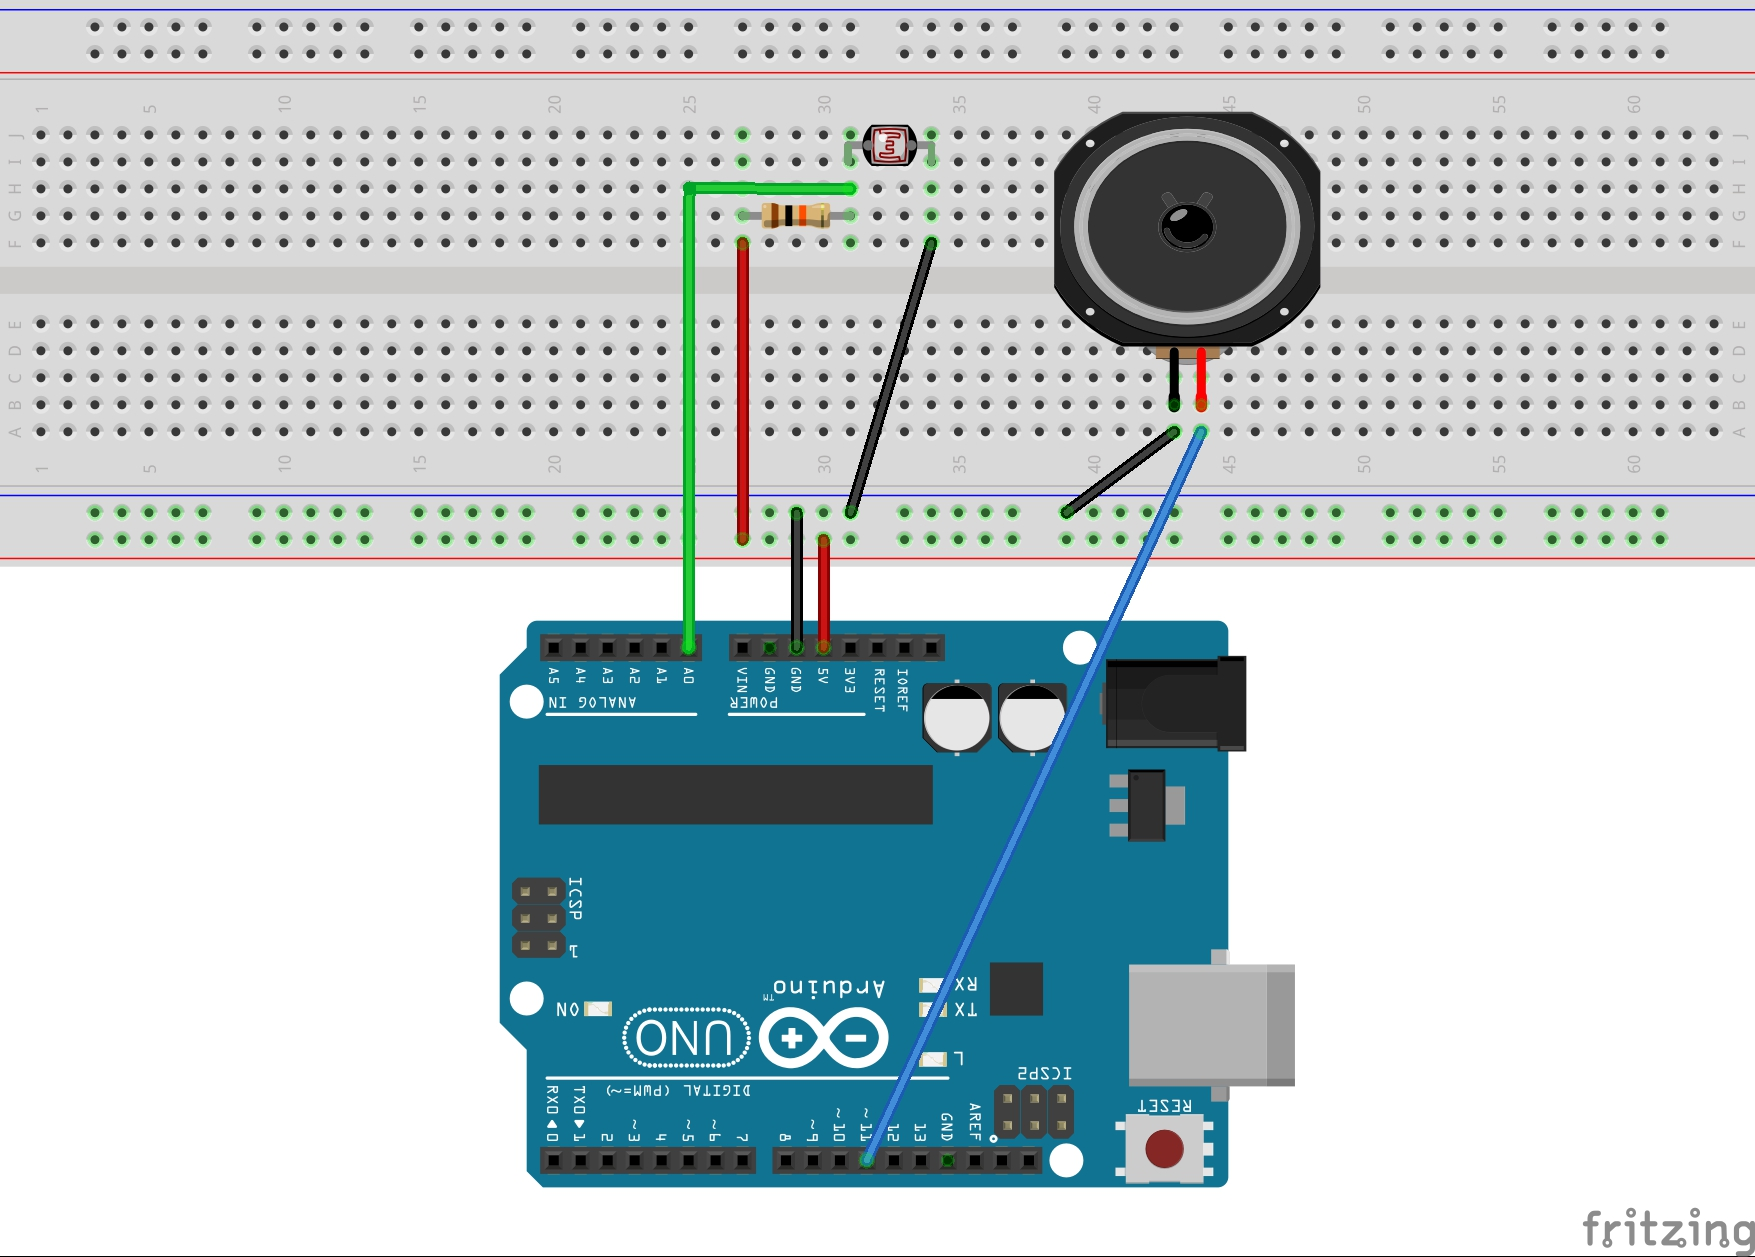 Circuito Ldr : Learn how to make a simple theremin with an arduino and an ldr